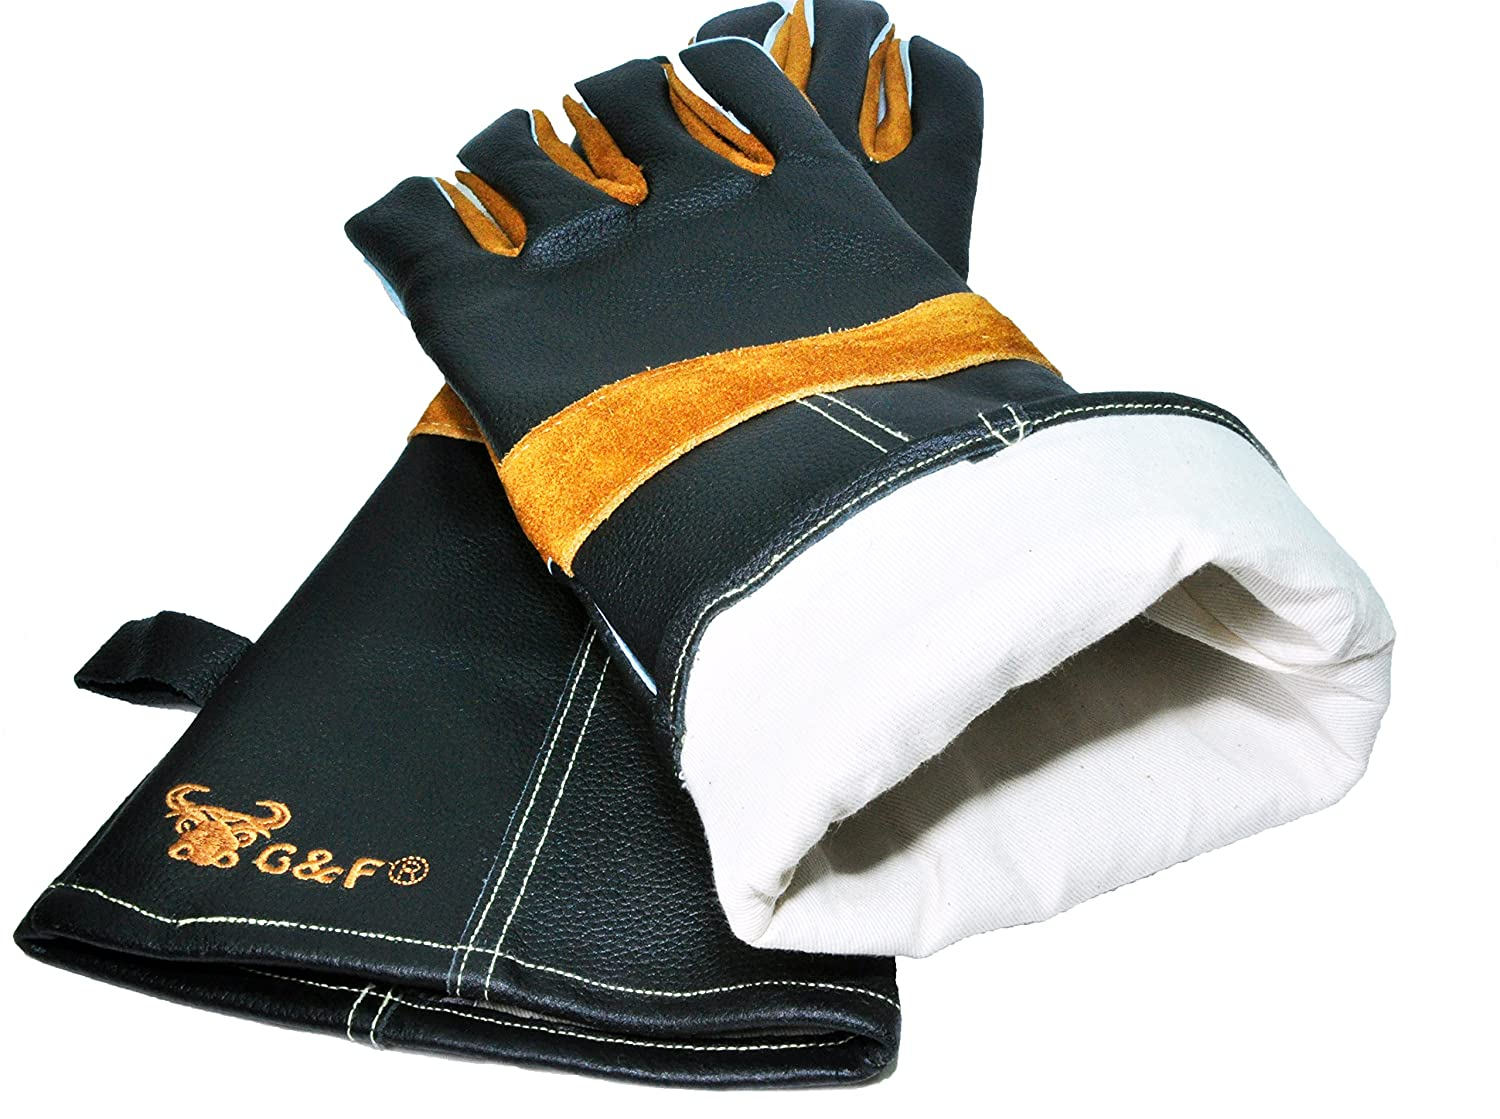 Leather work gloves ireland - Grillpro Black Leather Bbq Gloves Amazon Com G F 8115 Premium Grain Leather Gloves Bbq Gloves